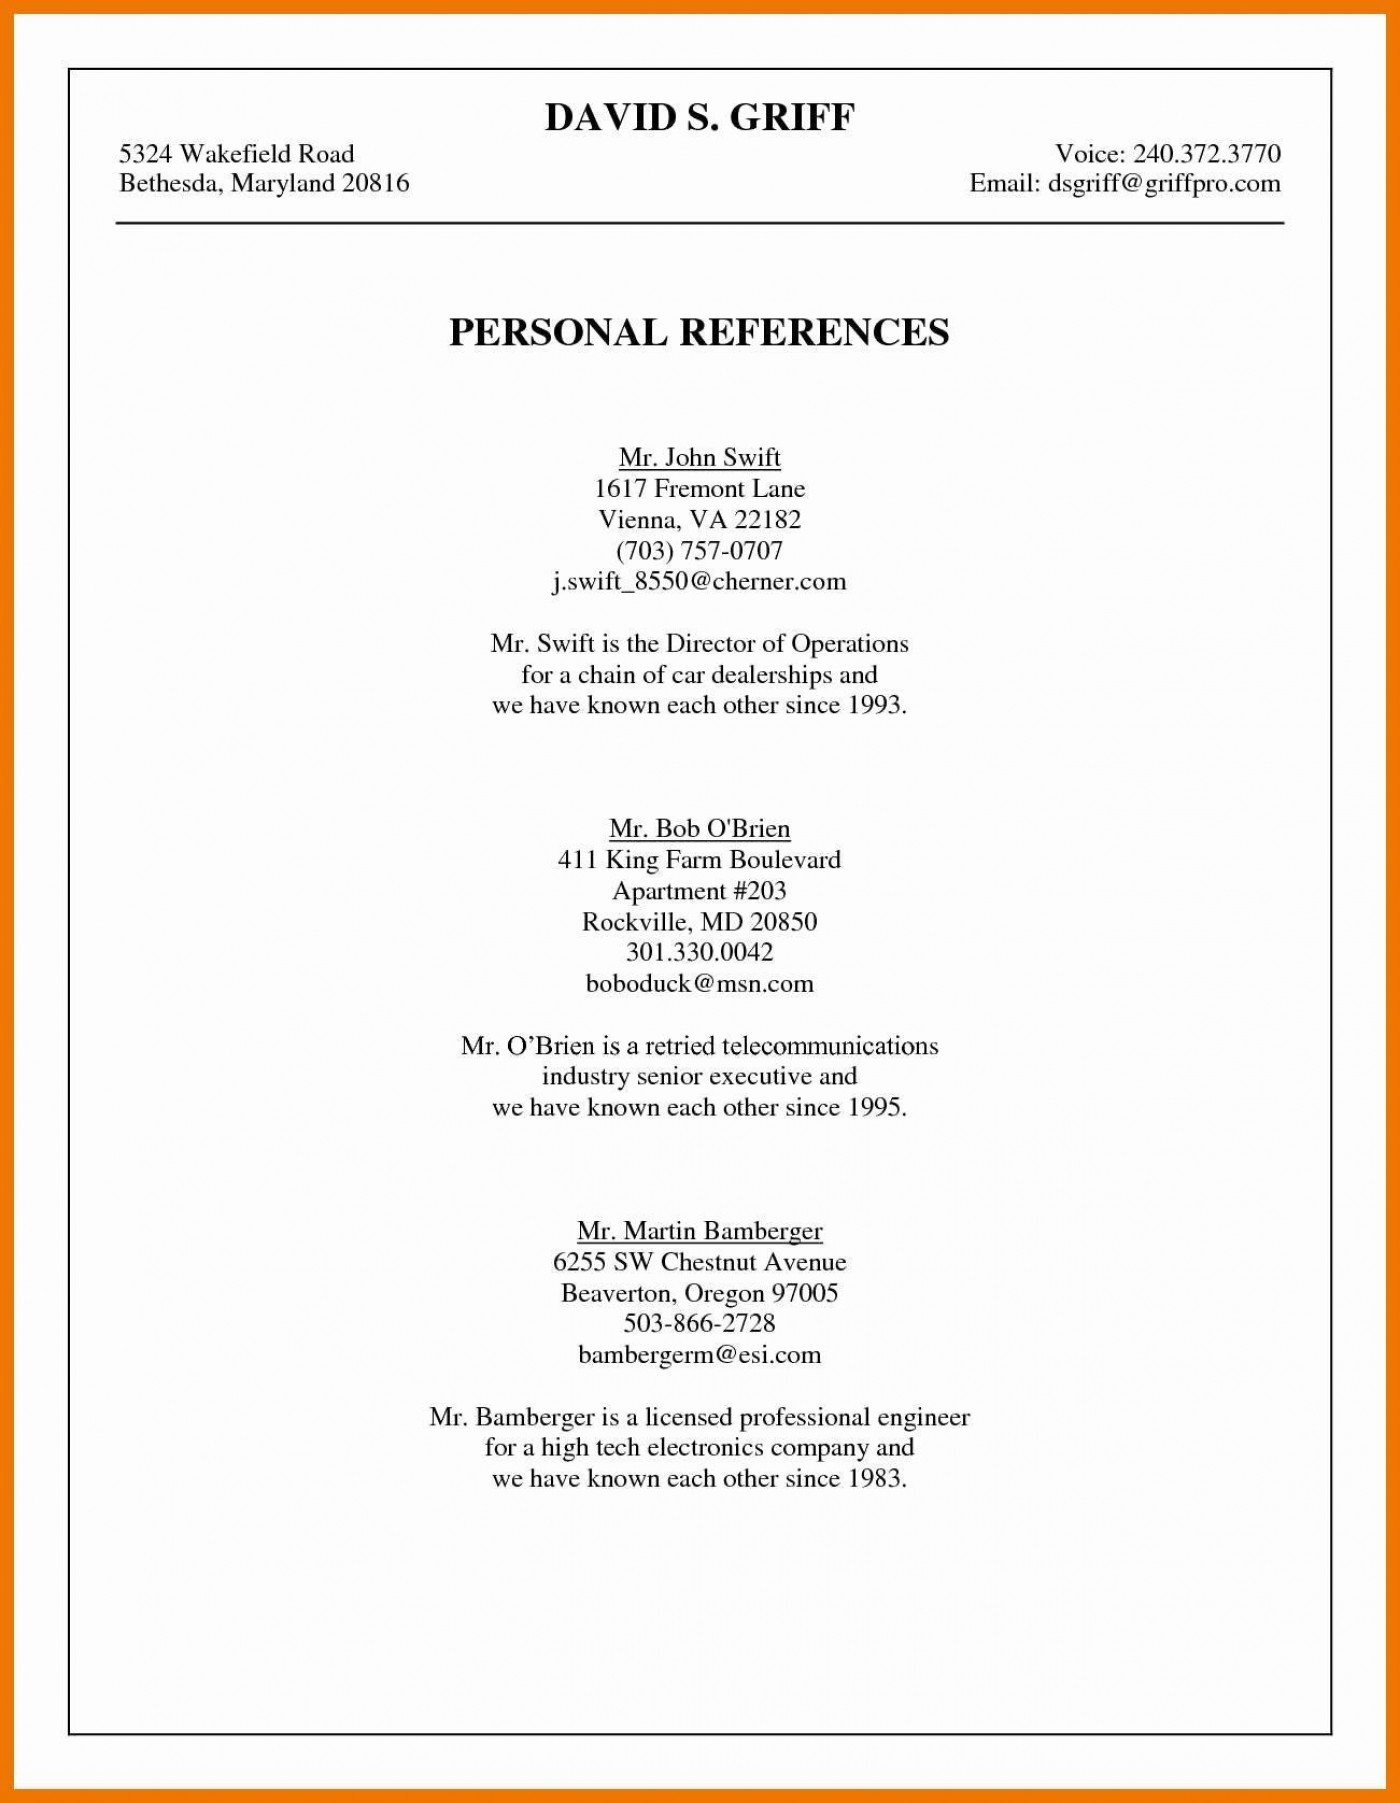 003 Phenomenal List Personal Reference Sample High Def 1400